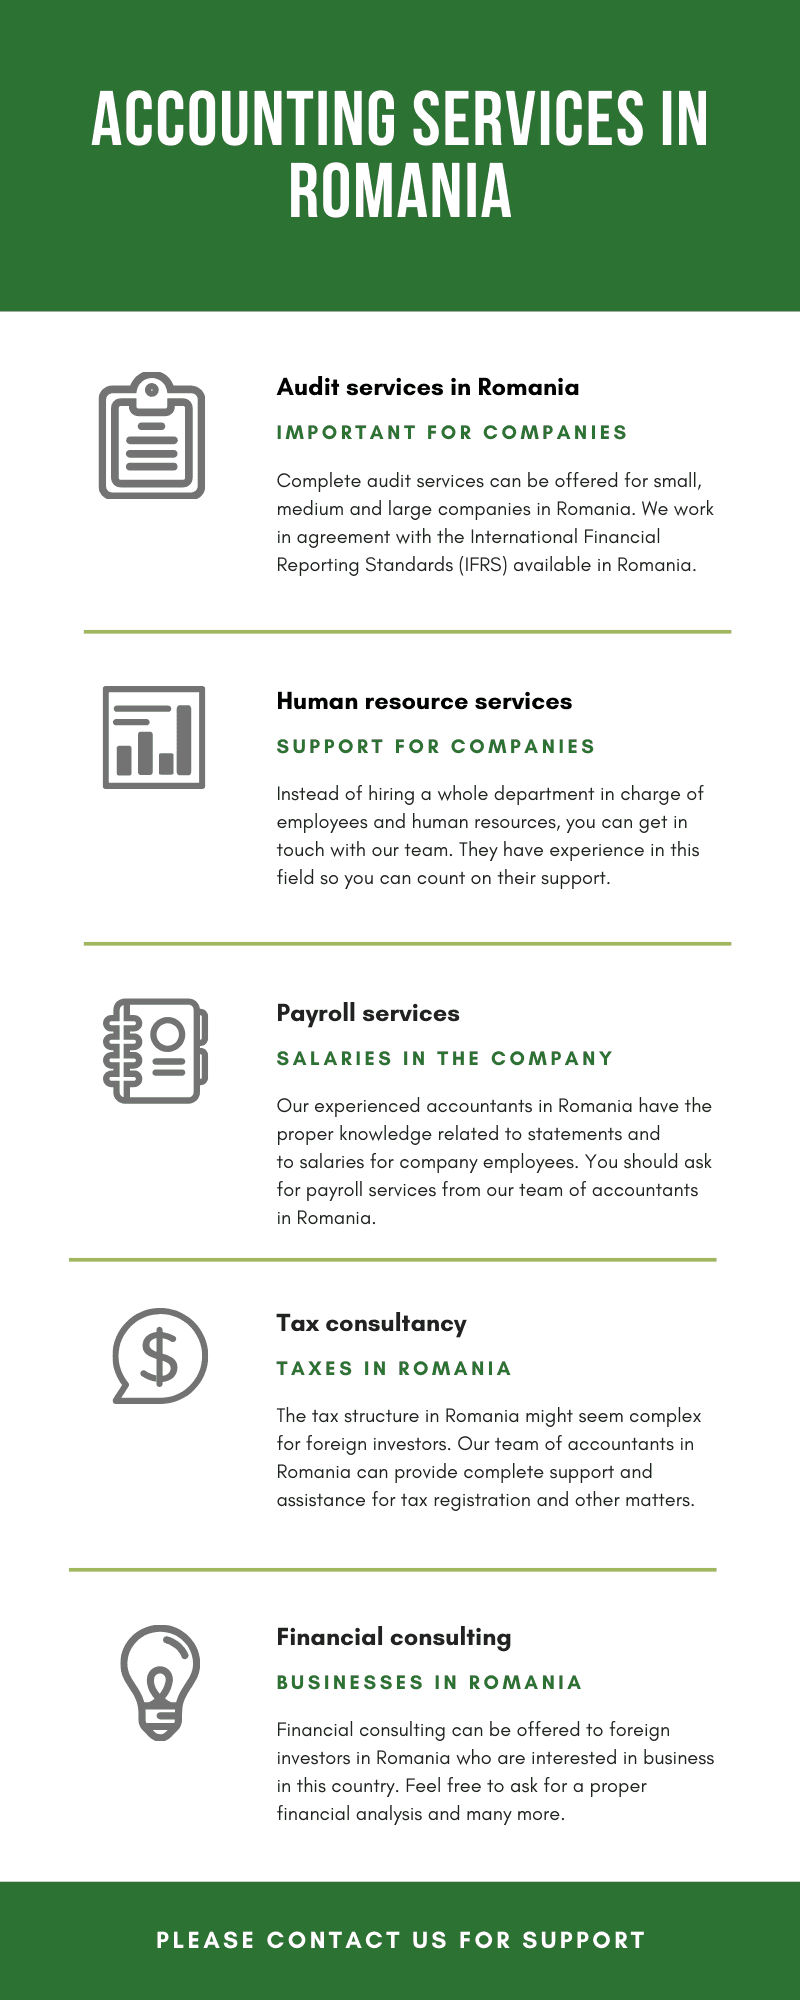 Accounting services inRomania.png